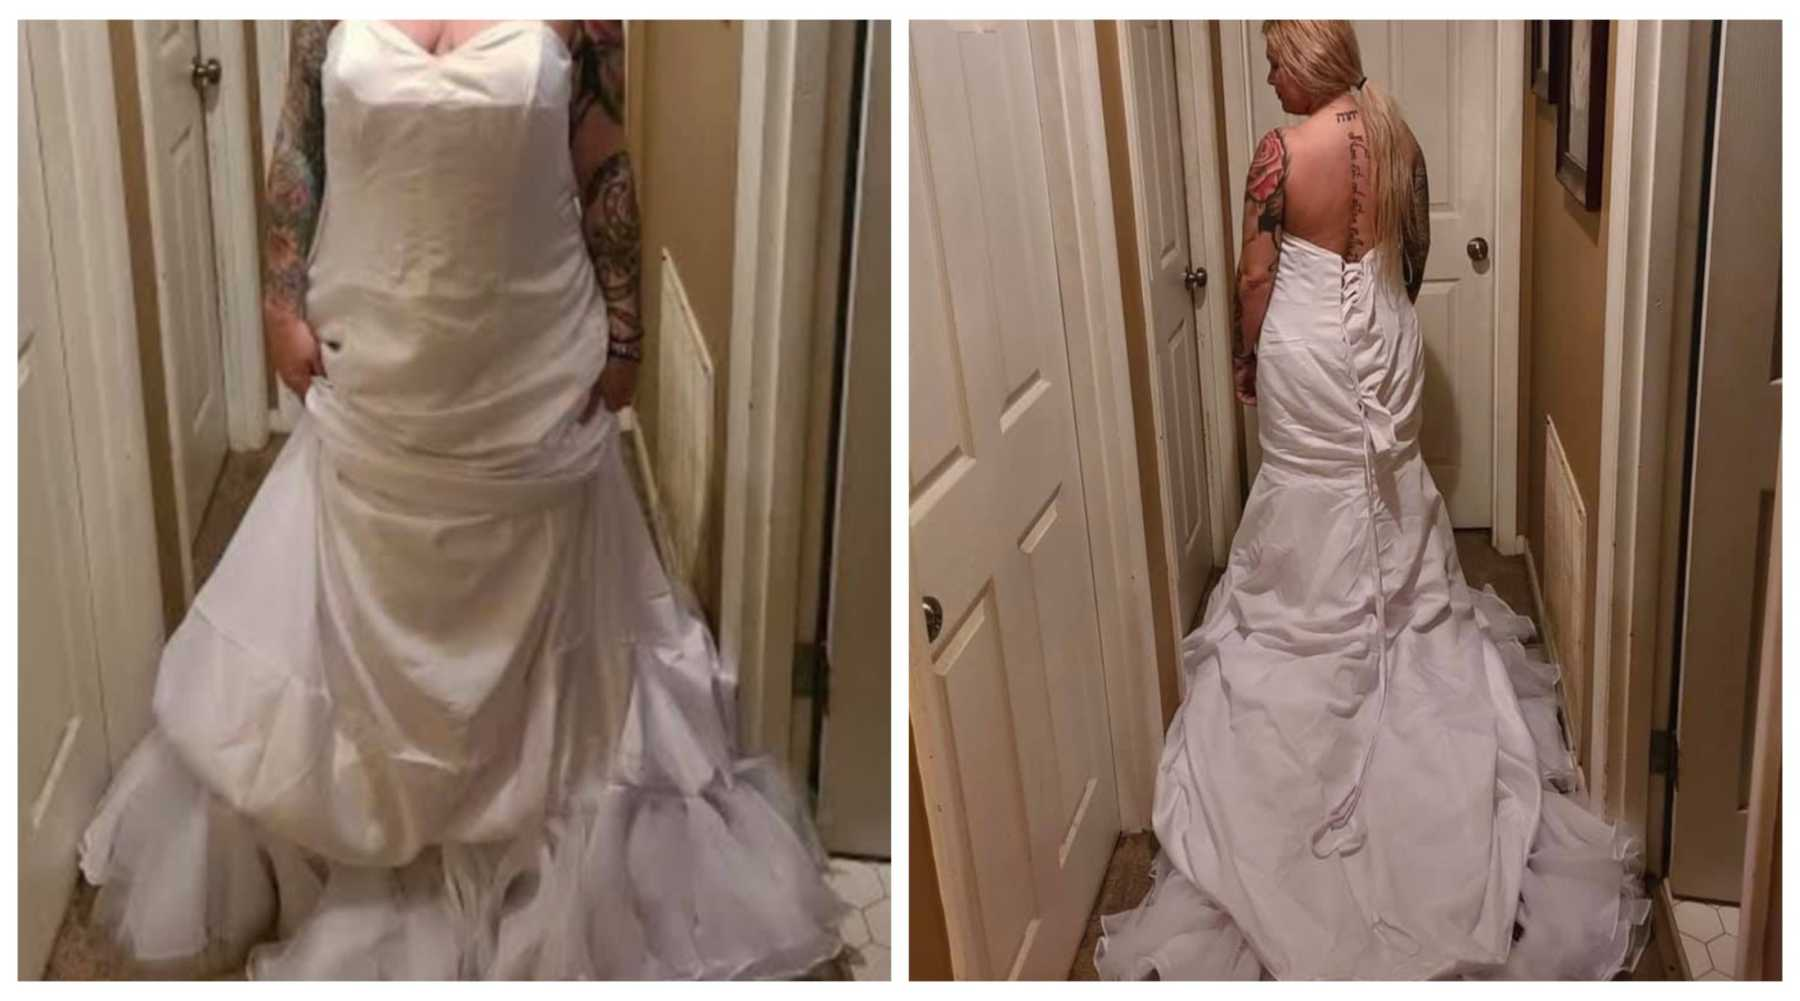 Angry Bride Flips Out On Dress Store Only To Learn She Had The Gown On Inside Out Cafemom Com